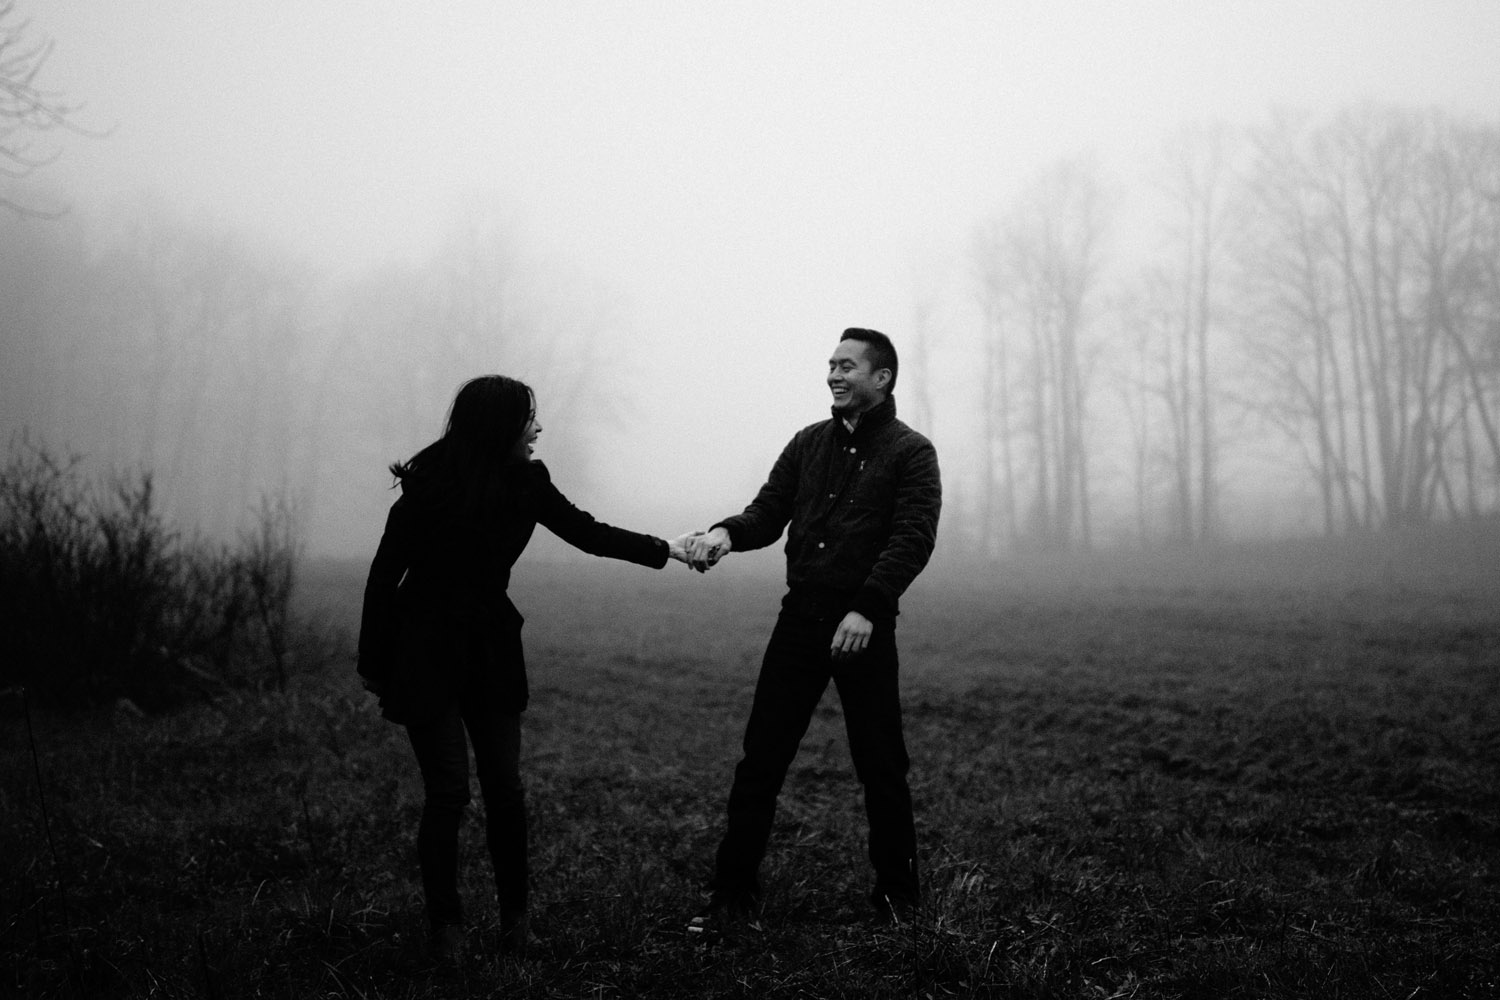 430-foggy-georgian-bay-adventure-session-with-recently-engaged-couple.jpg